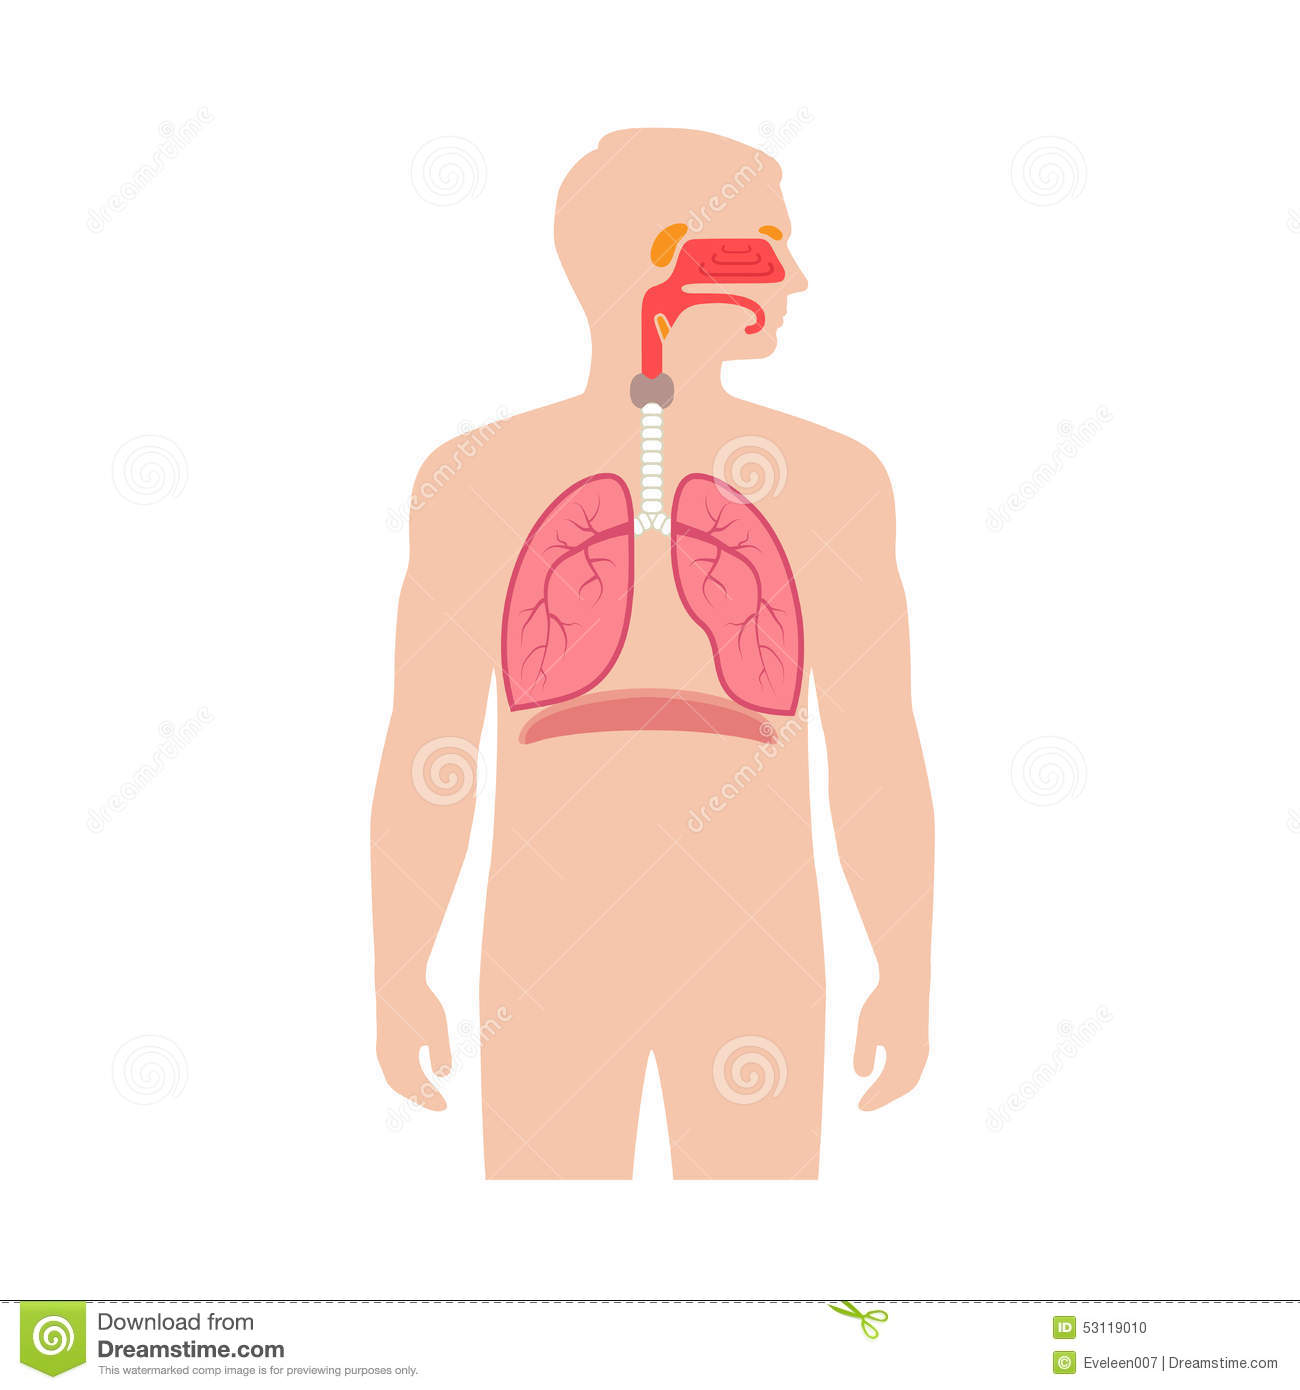 Human respiratory system anatomy, vector medical nose illustration.